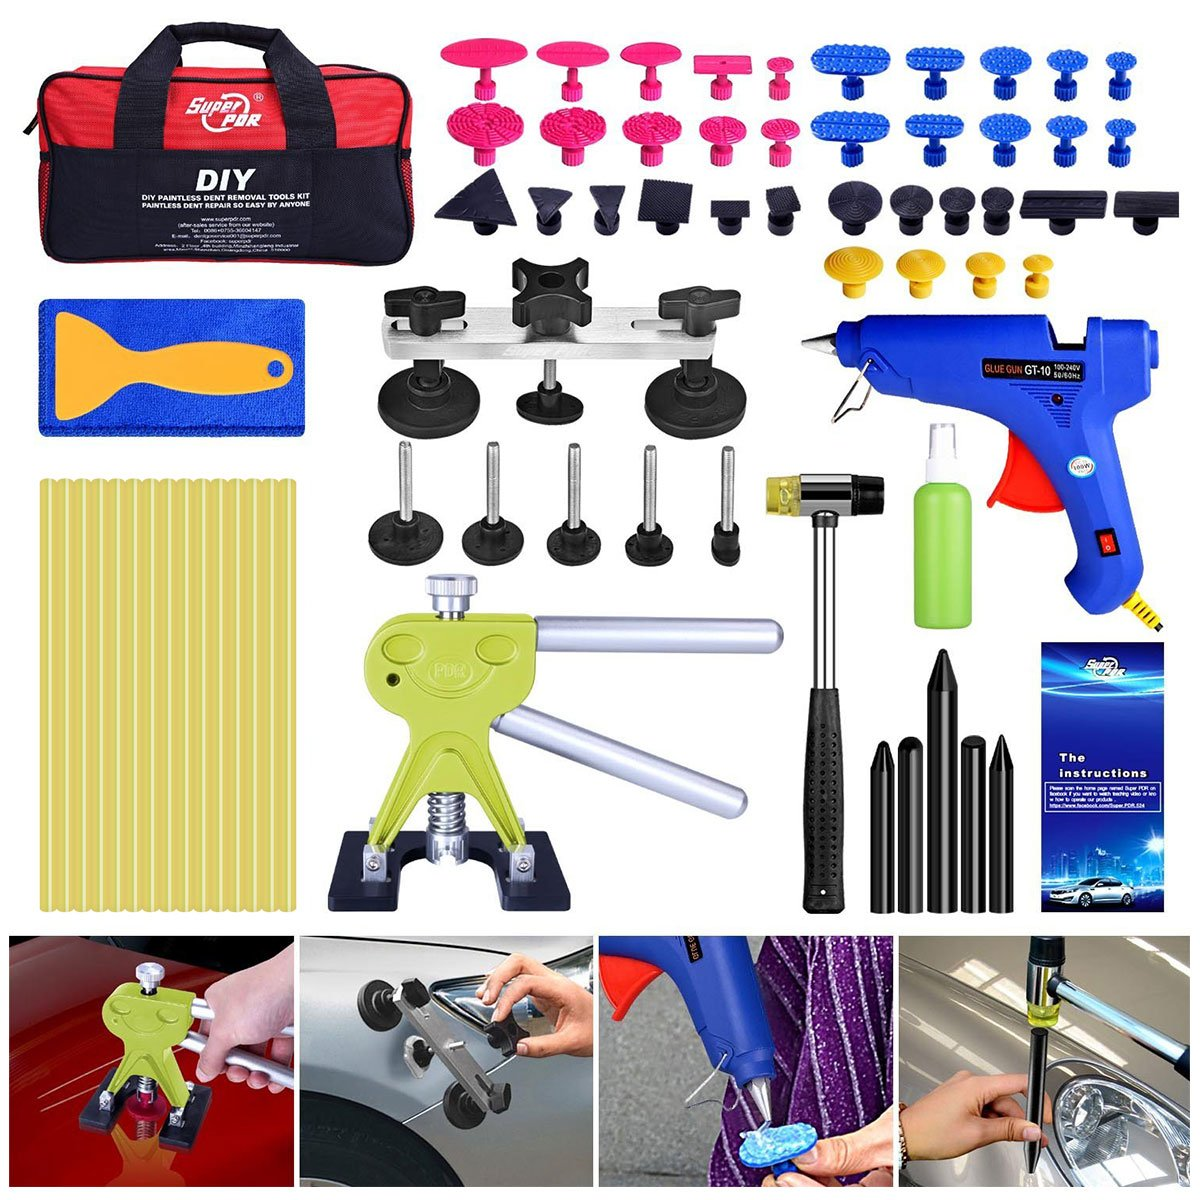 Super PDR 64pcs PDR Kits Auto Car Body Paintless Dent Repair Removal Tools Kit Door ding Remover Repair Kits dent Lifter Glue Pulling Bridge Puller Set with Tool Bag